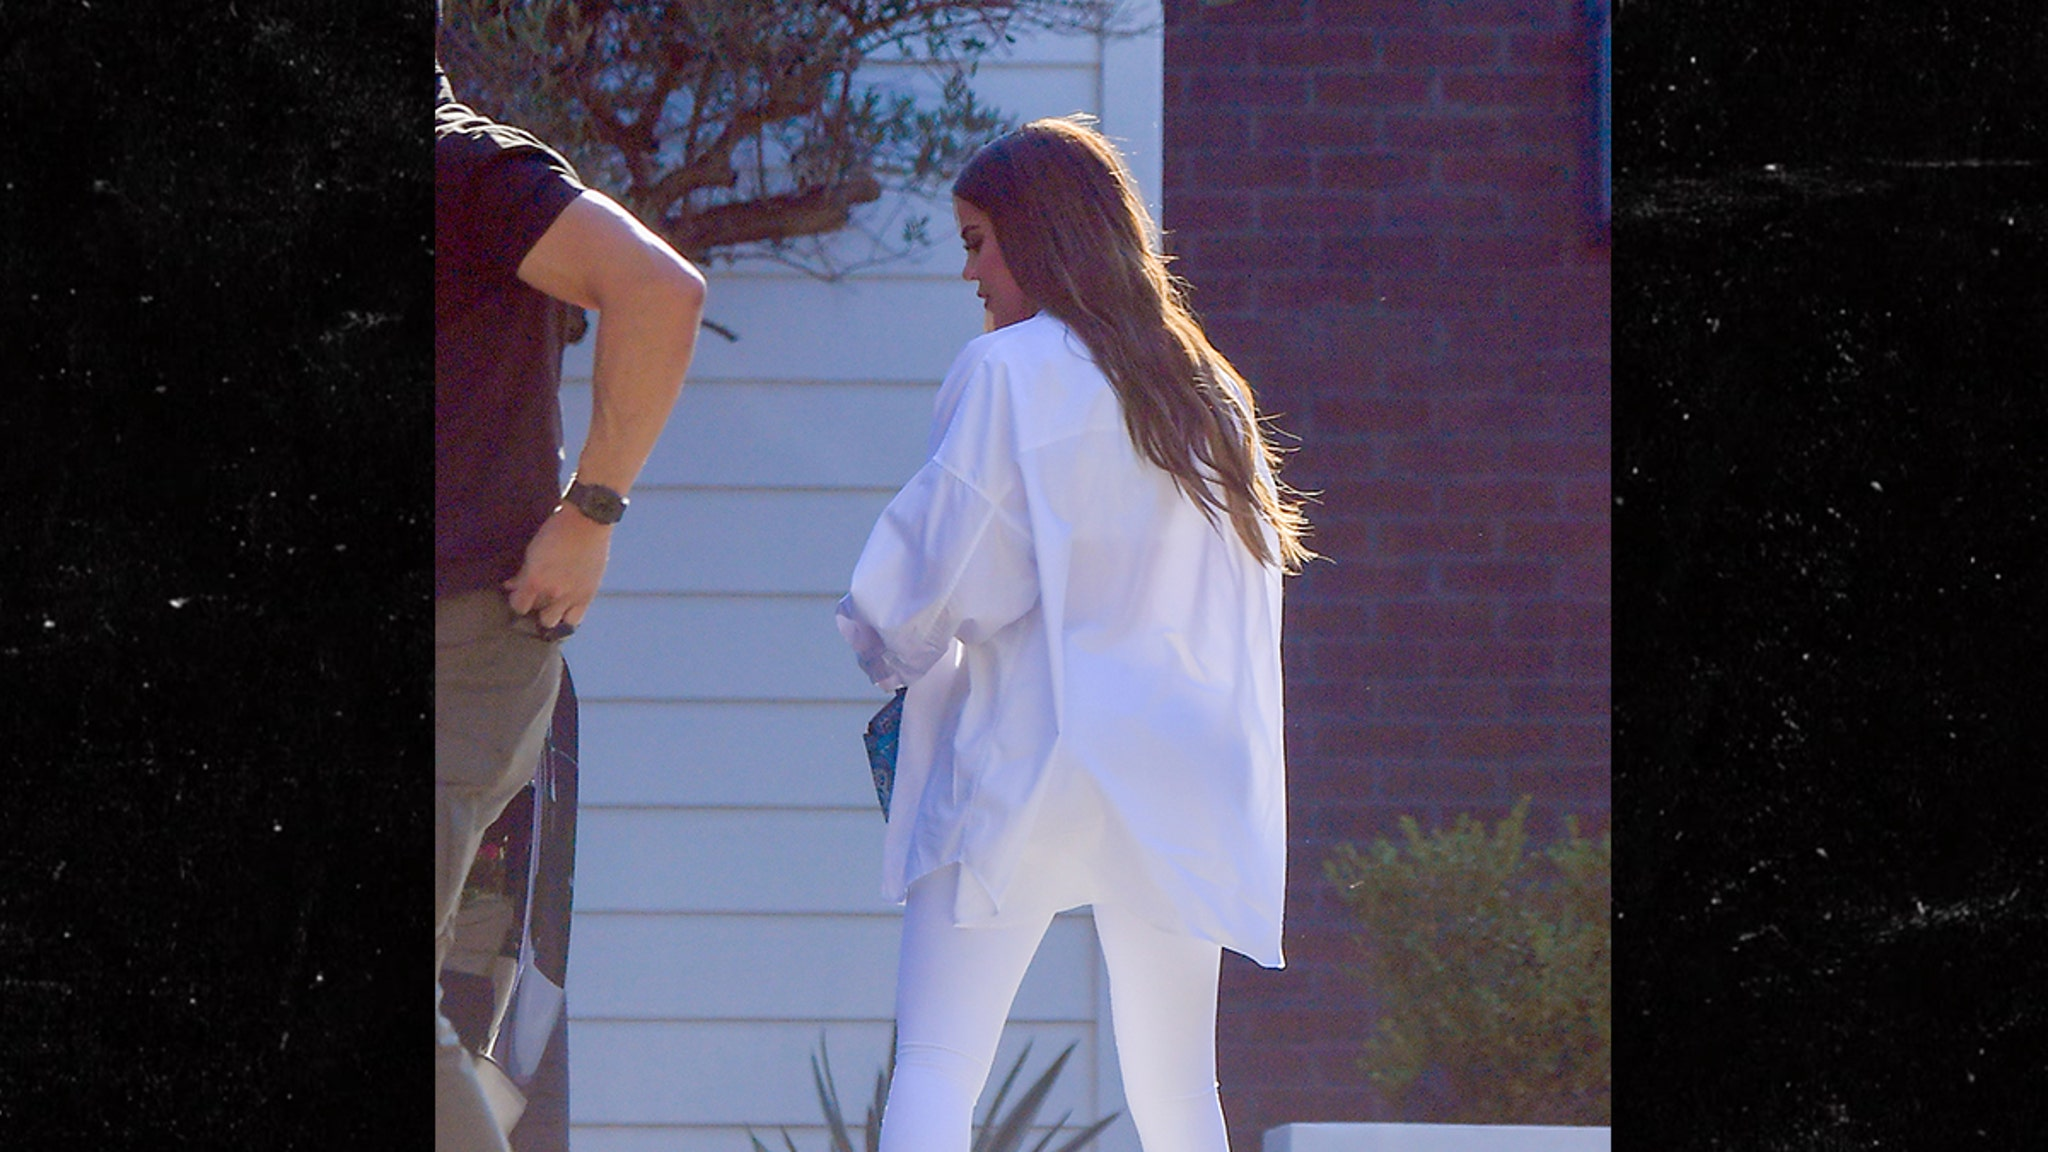 Kardashians Flock to Tristan's House for the 4th Khloe Included, Of Course